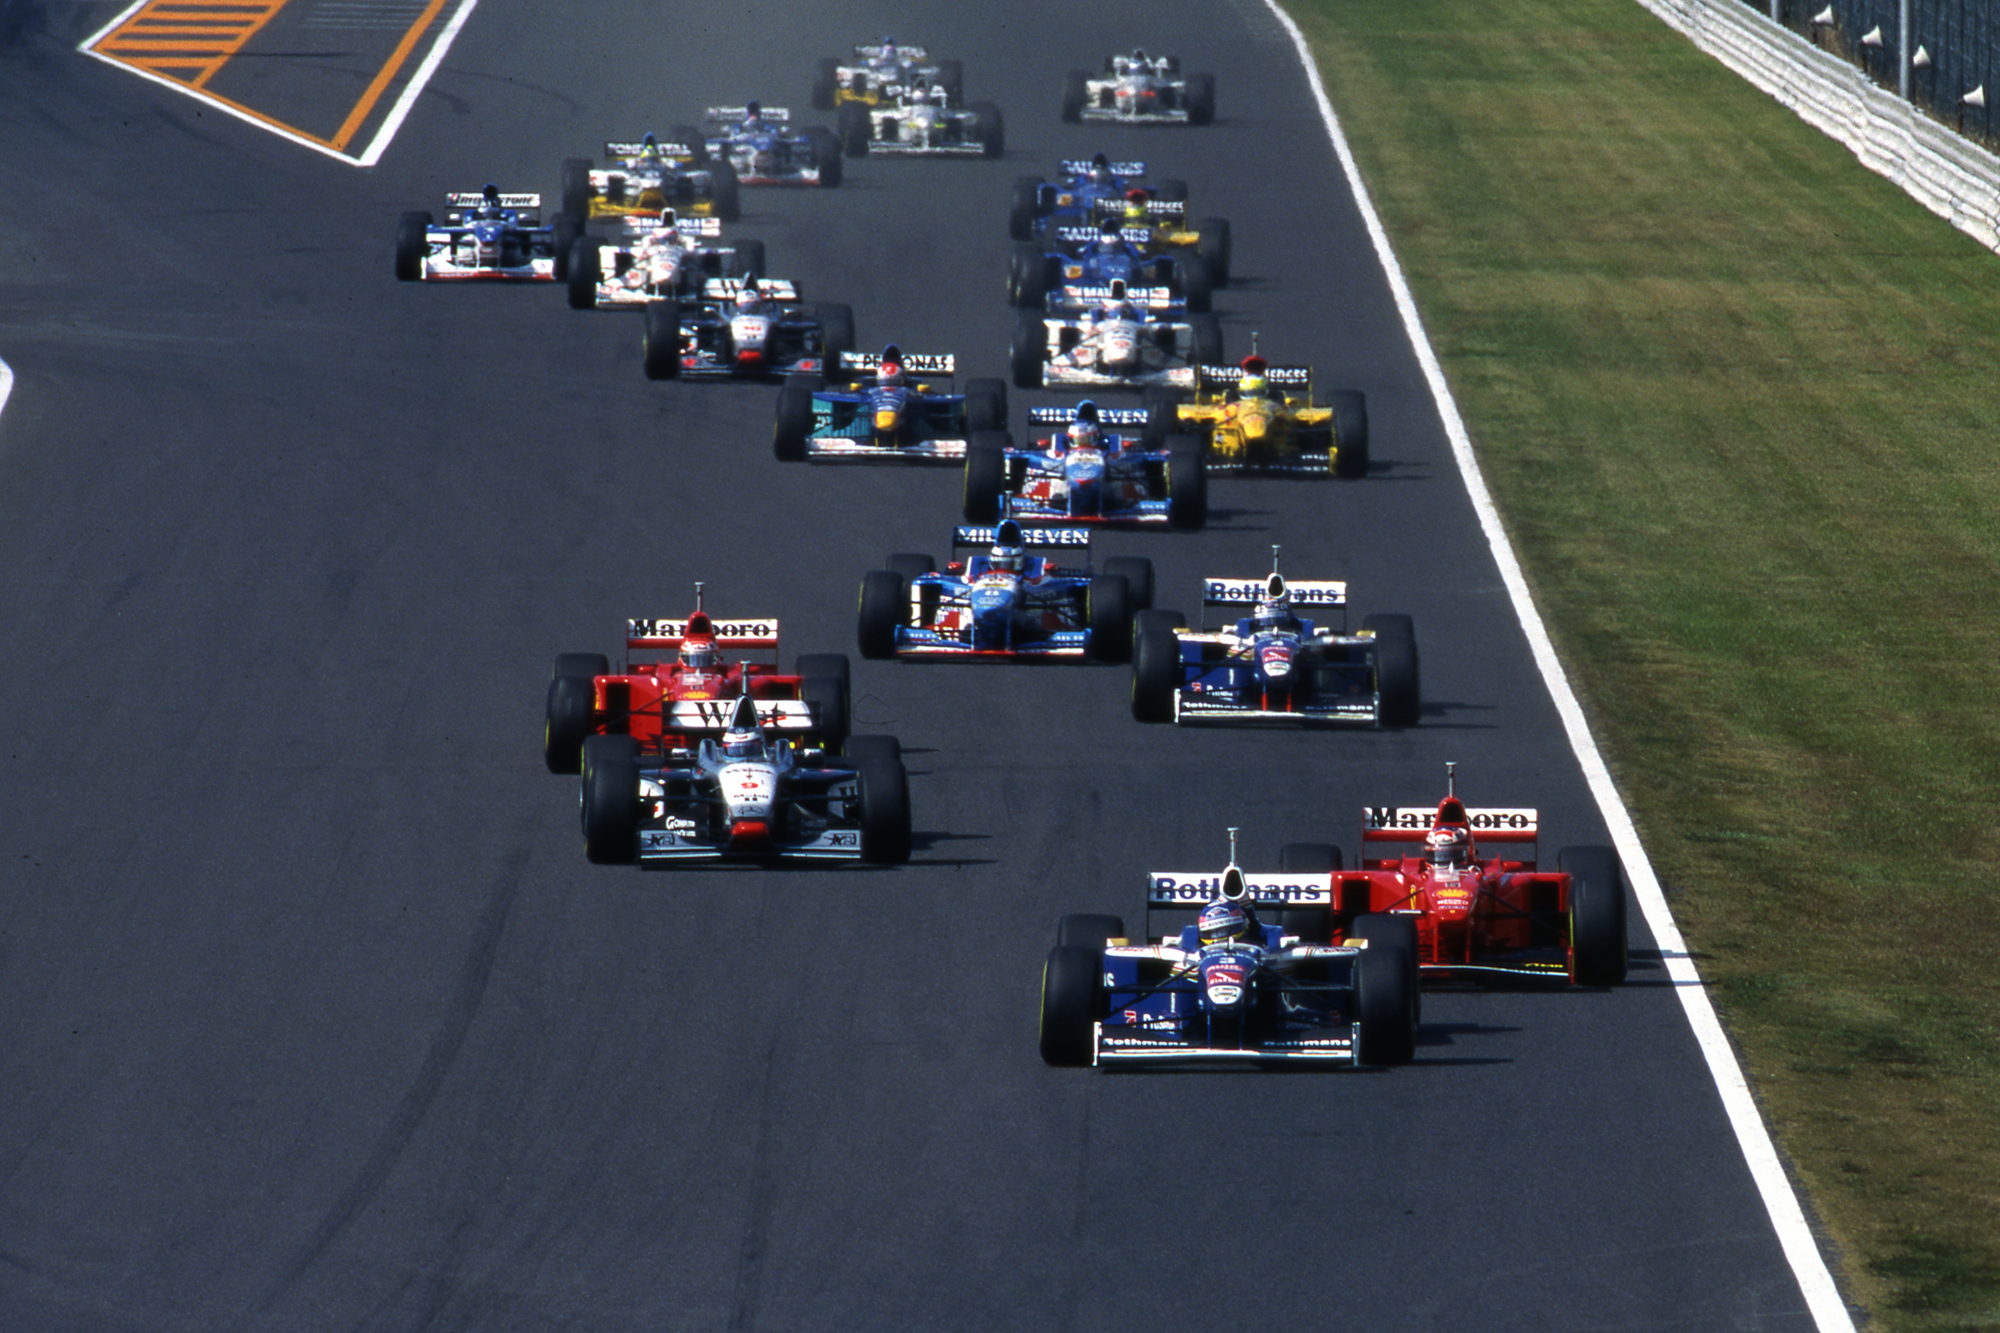 Jacques Villeneuve Williams Japanese Grand Prix 1997 Suzuka